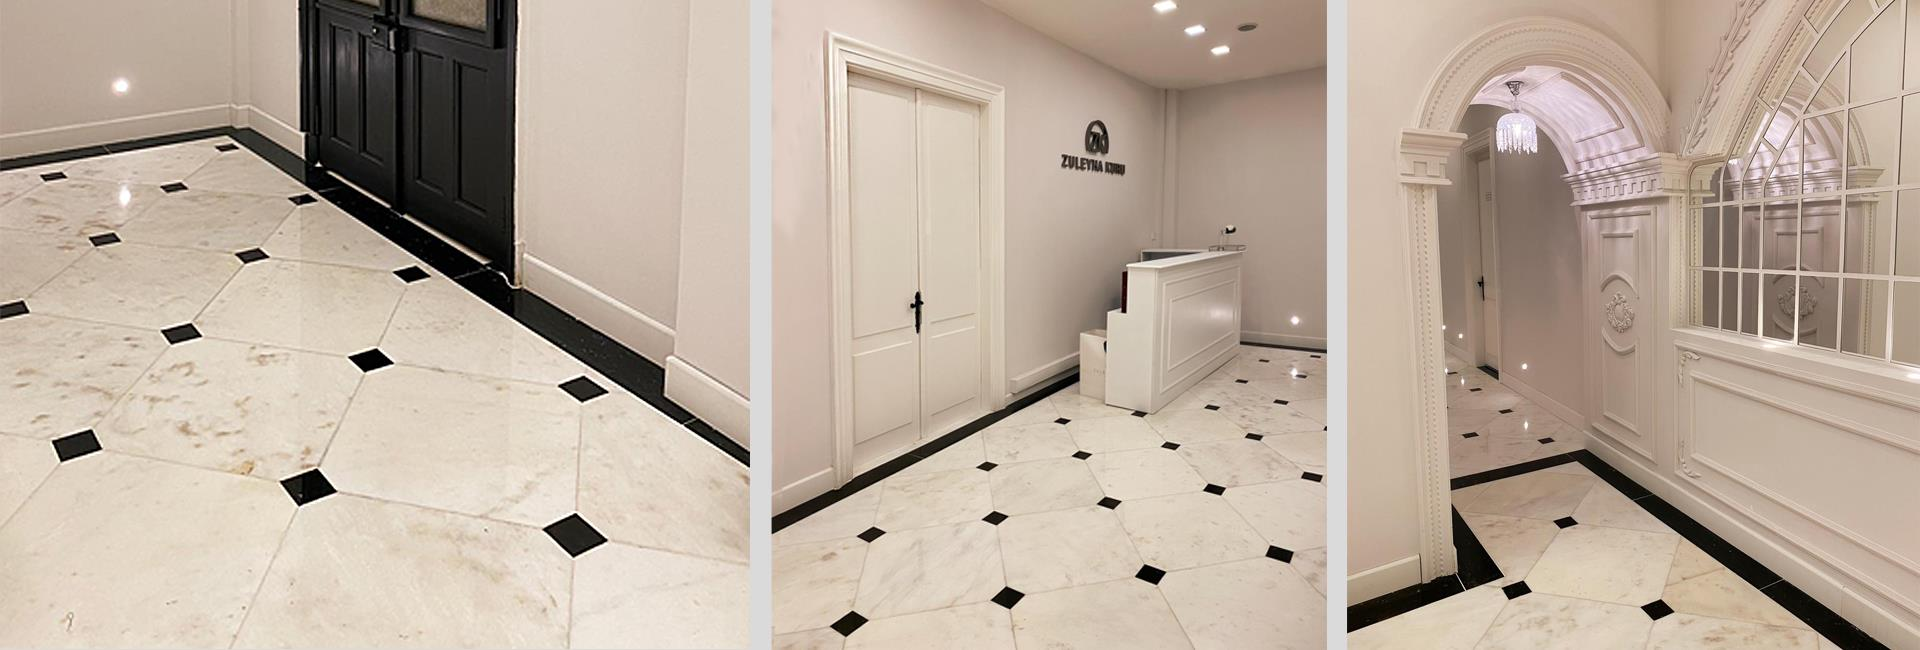 Afyon White Marble A La Vogue Tile